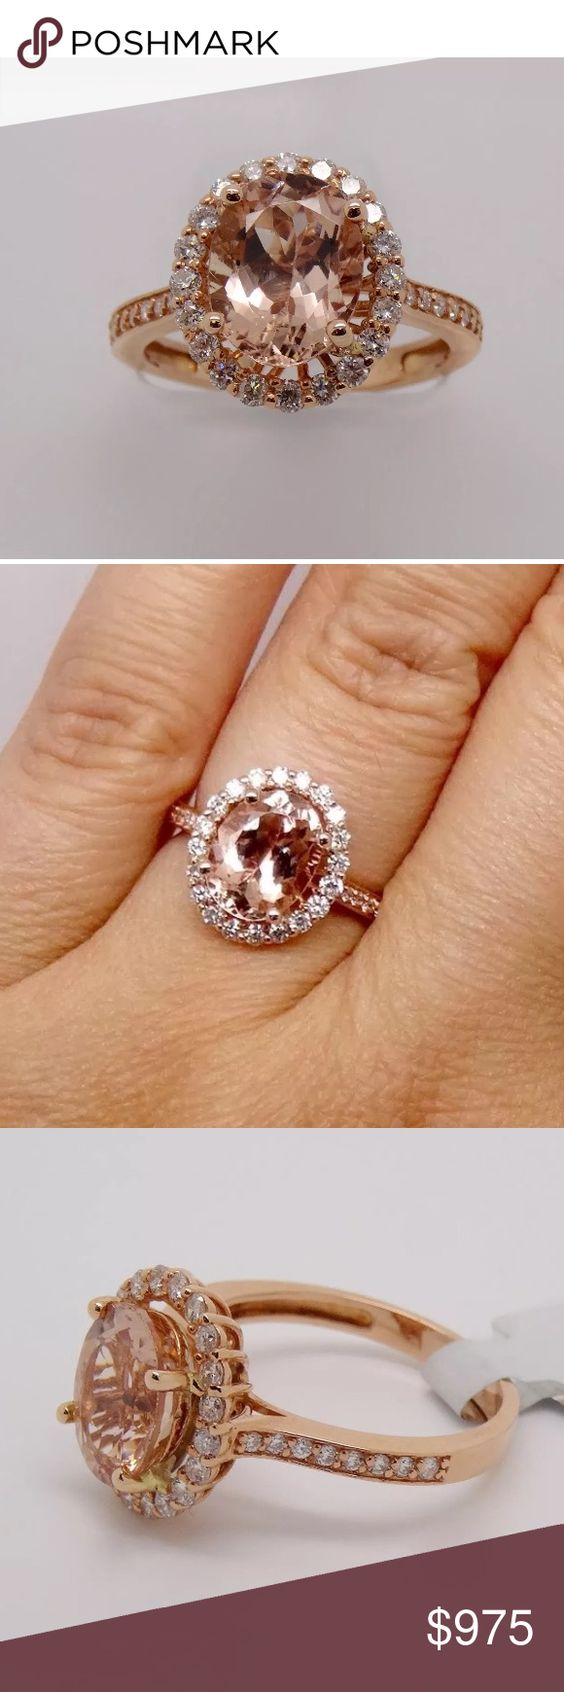 3 Carat 14k Rose Gold Diamond And Morganite Ring 3 Carat 14k Rose Gold  Diamond And